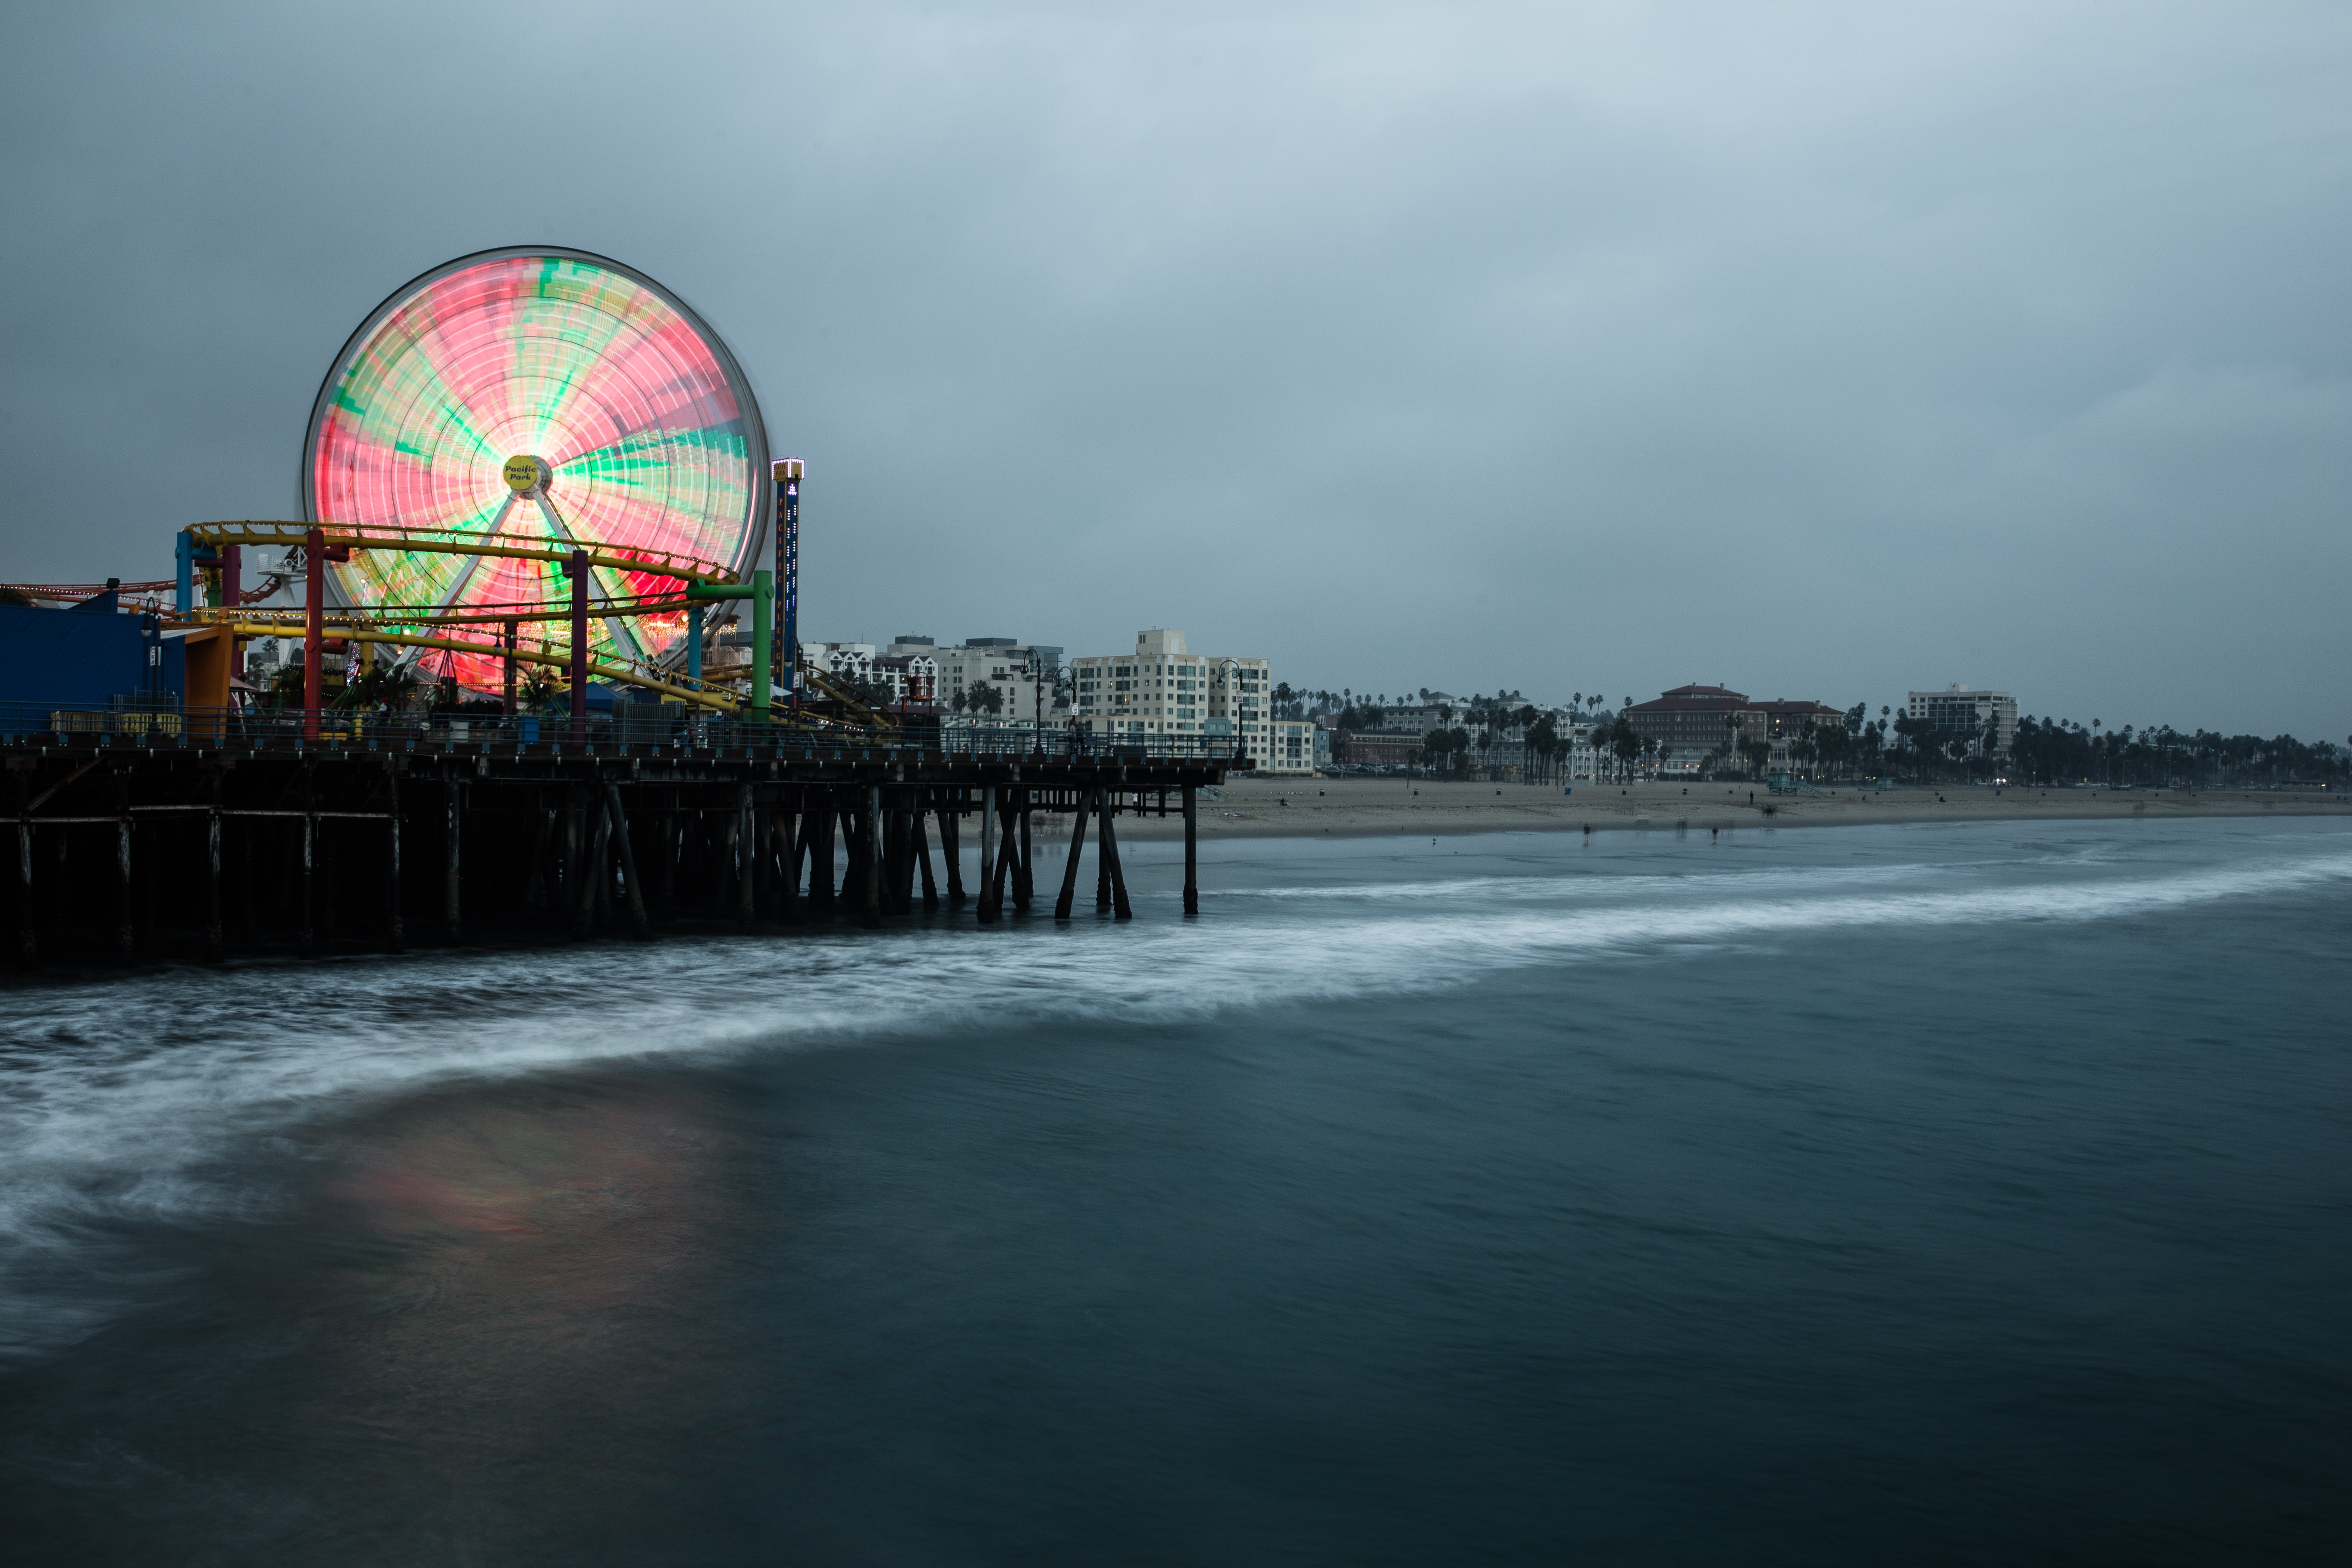 Big colorful Ferris wheel and a rollercoaster at the Santa Monica Pier